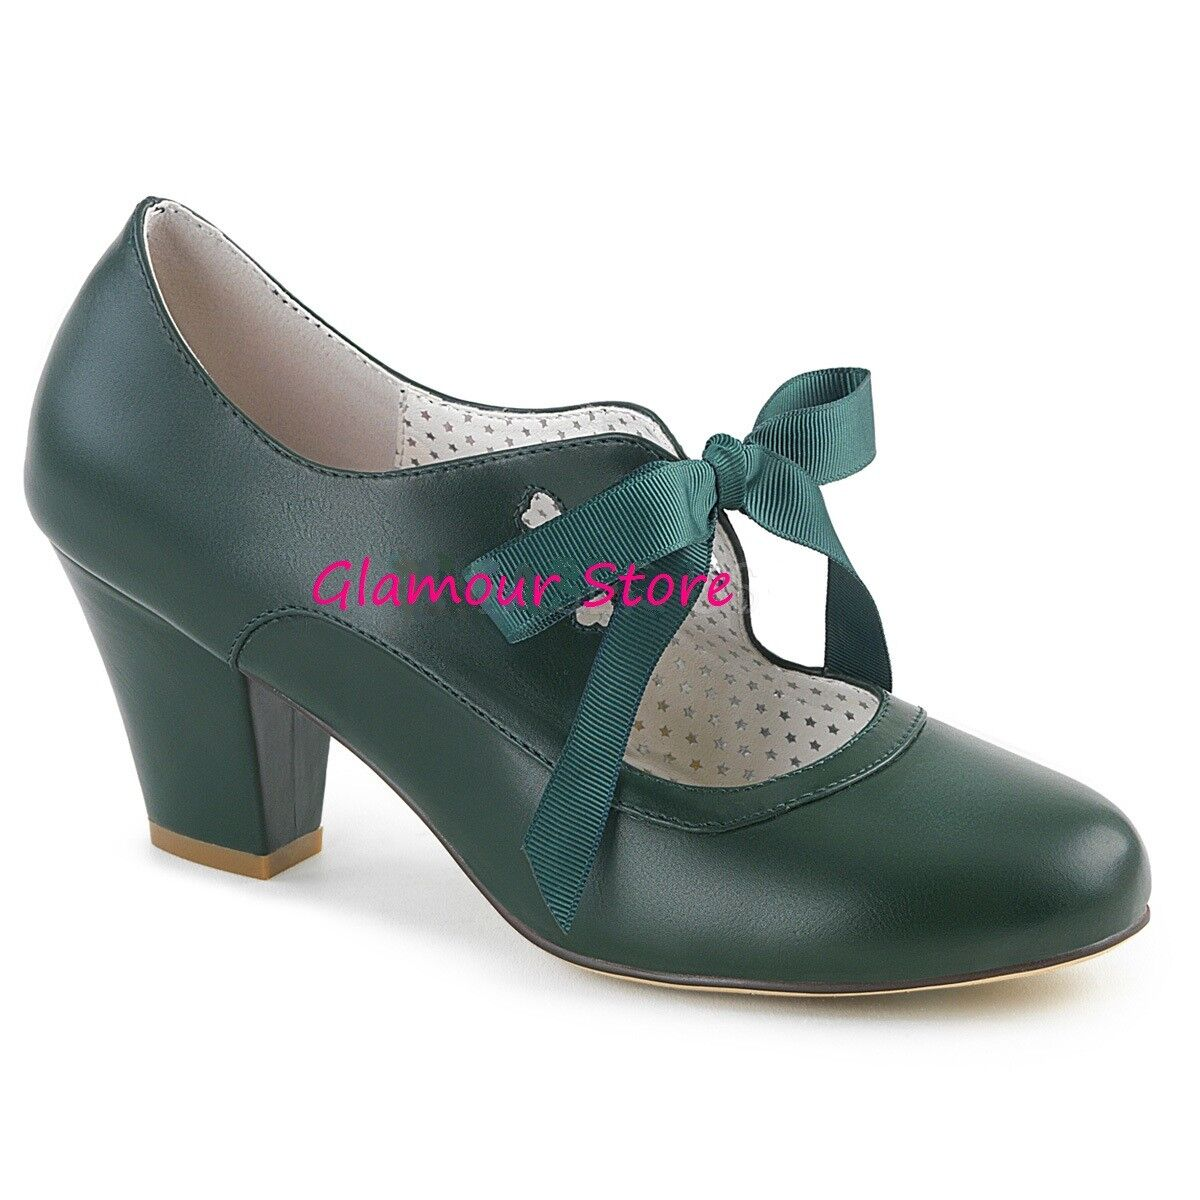 Sexy DECOLTE' tacco 6,5 6,5 6,5 dal 35 a 41 vert SCURO fiocchetto chaussures PIN UP glamour be7d21